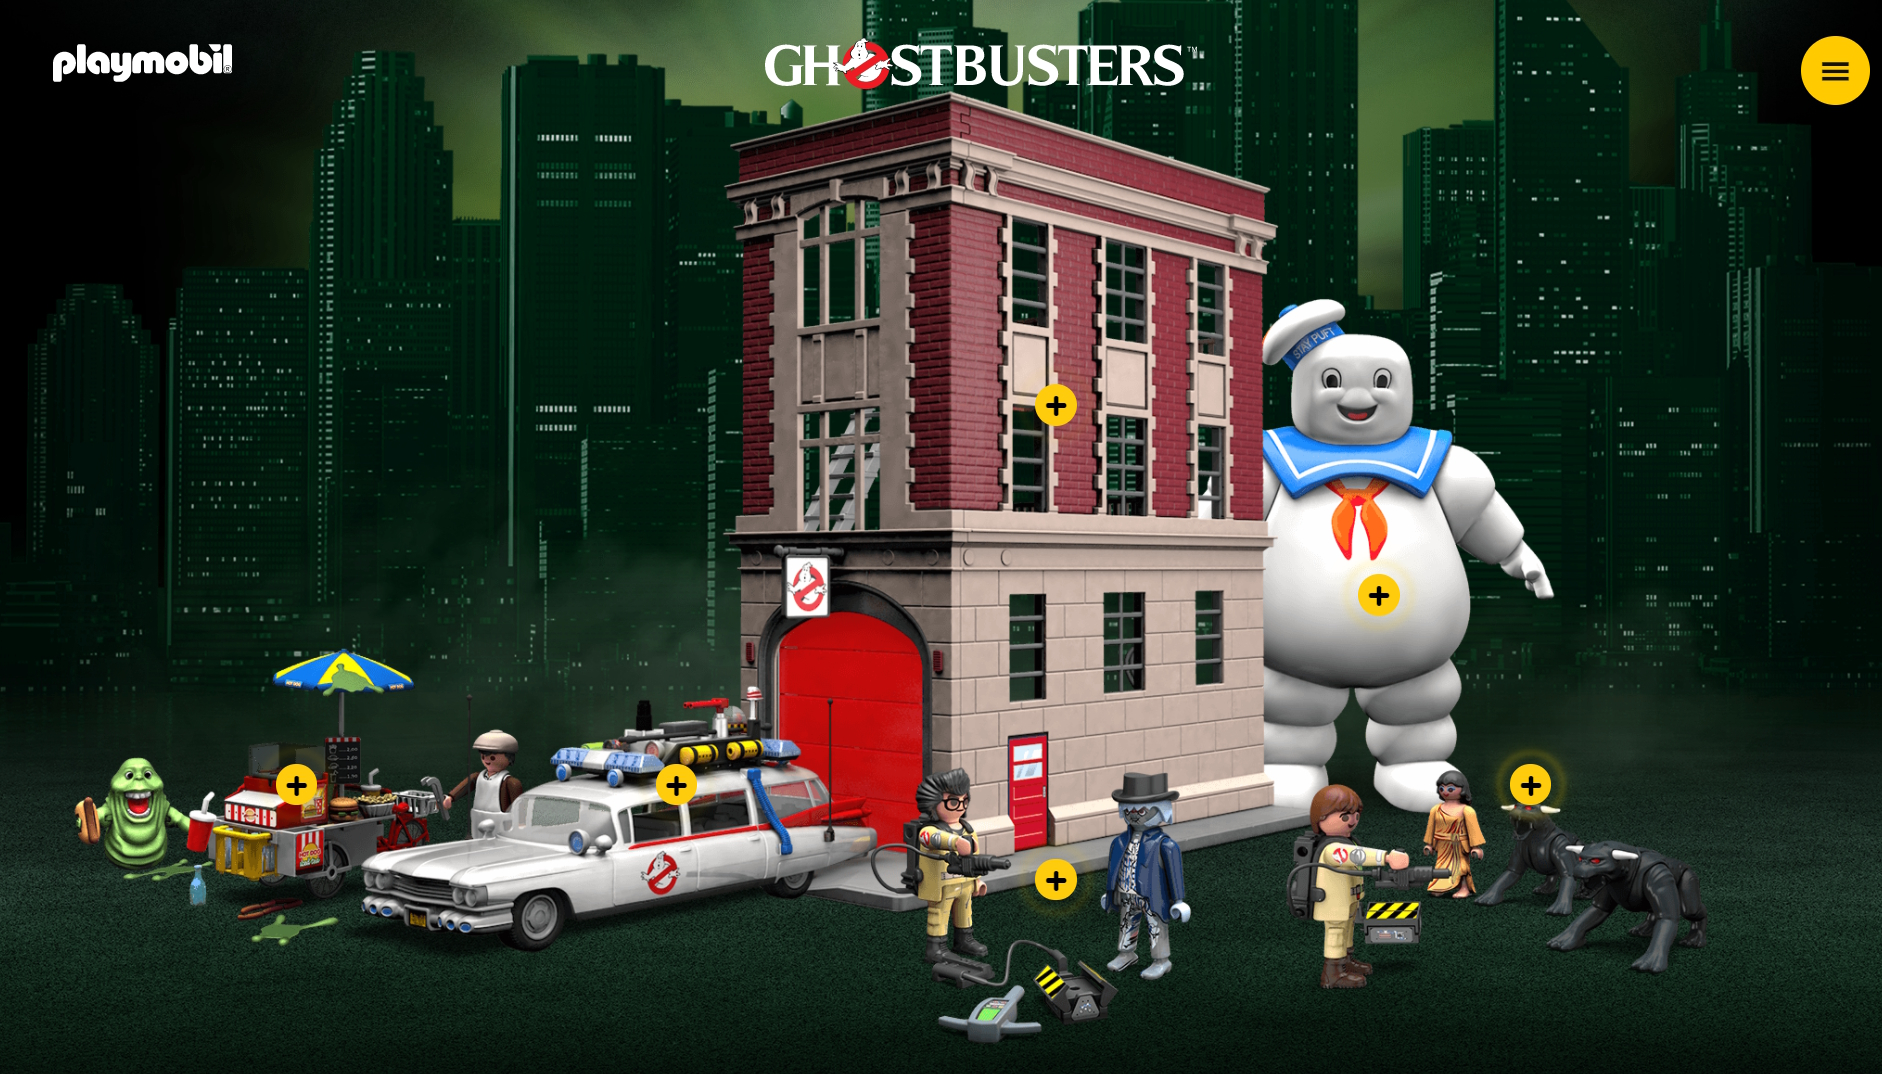 sound the alarm the playmobil ghostbusters are on the hunt for ghosts ghostbusters mania. Black Bedroom Furniture Sets. Home Design Ideas